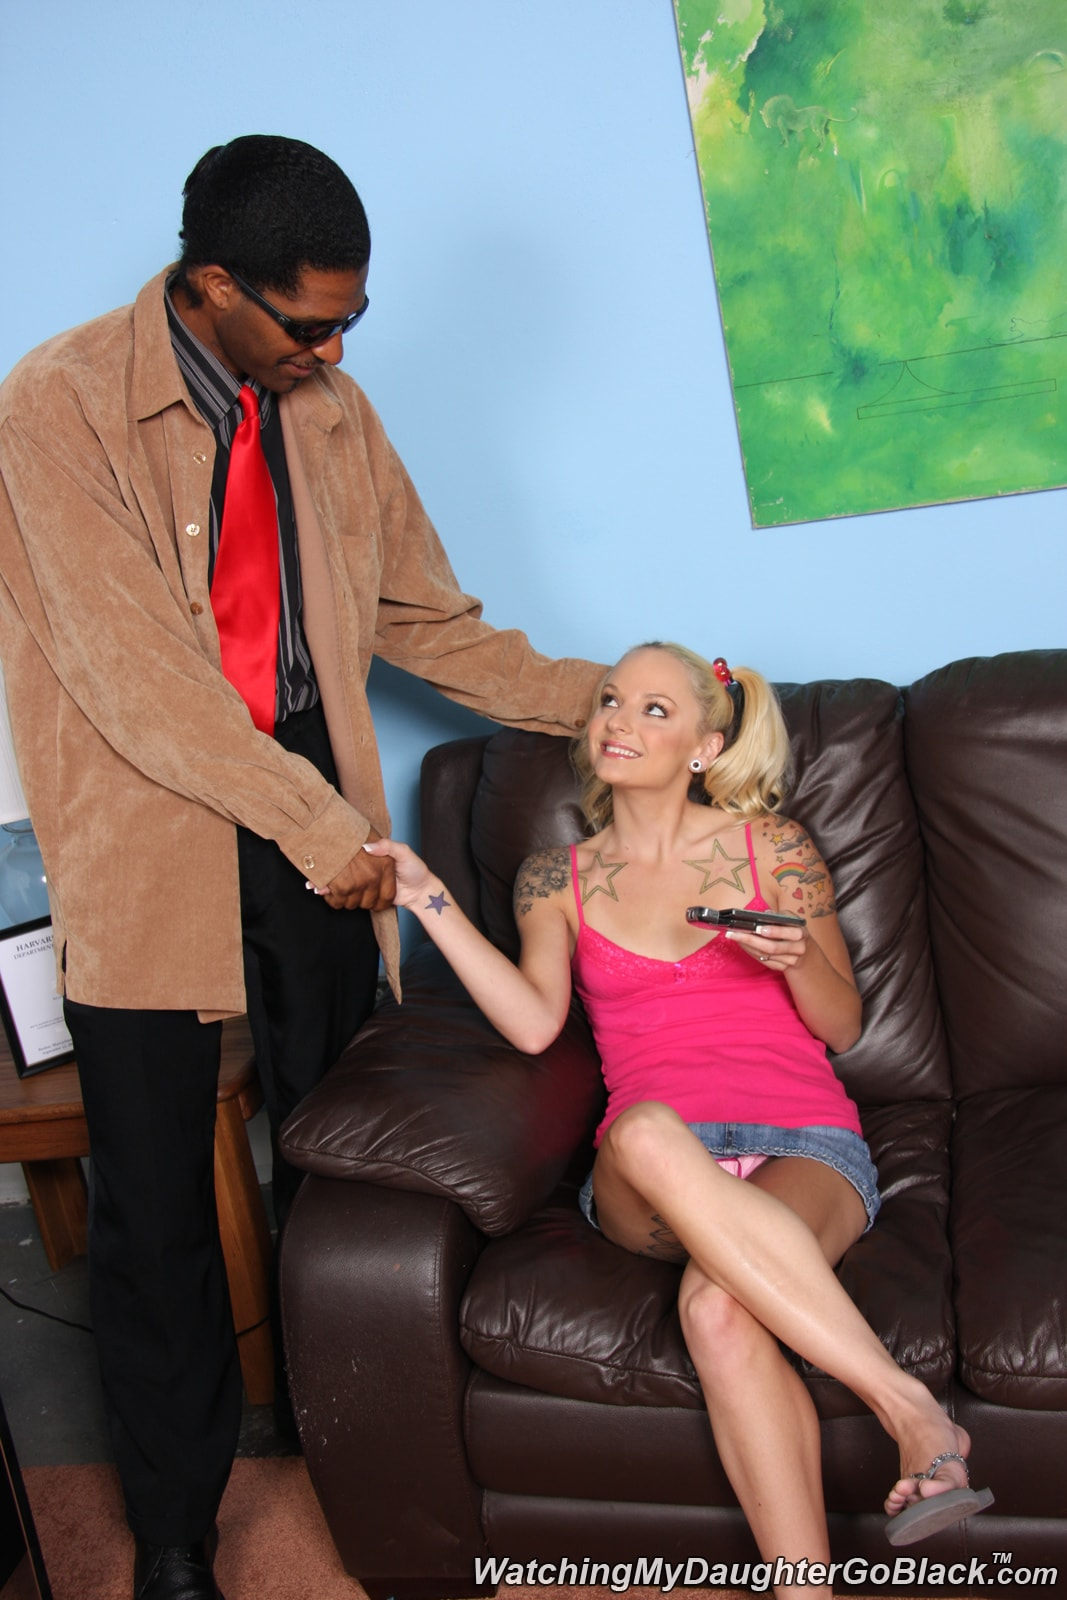 Dogfart 'Faye Runaway - Watching My Daughter Go Black' starring Faye Runaway (photo 4)